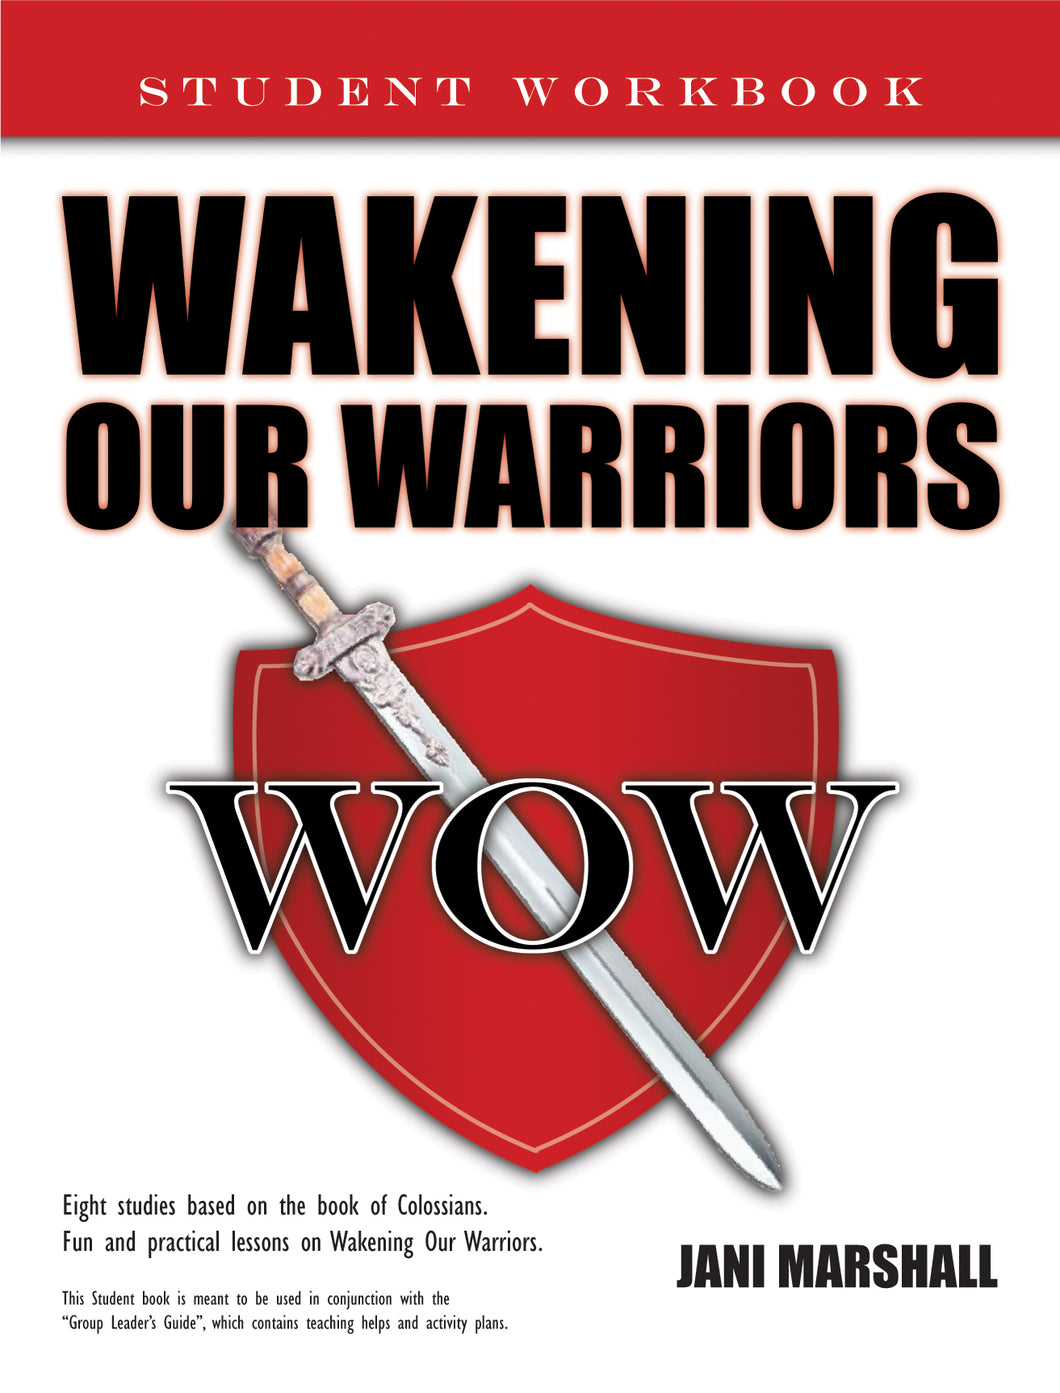 Wakening Our Warriors, Student Workbook:<br><small>Eight Studies Based on the Book of Colossians. Fun and Practical Lessons on Wakening Our Warriors</small>